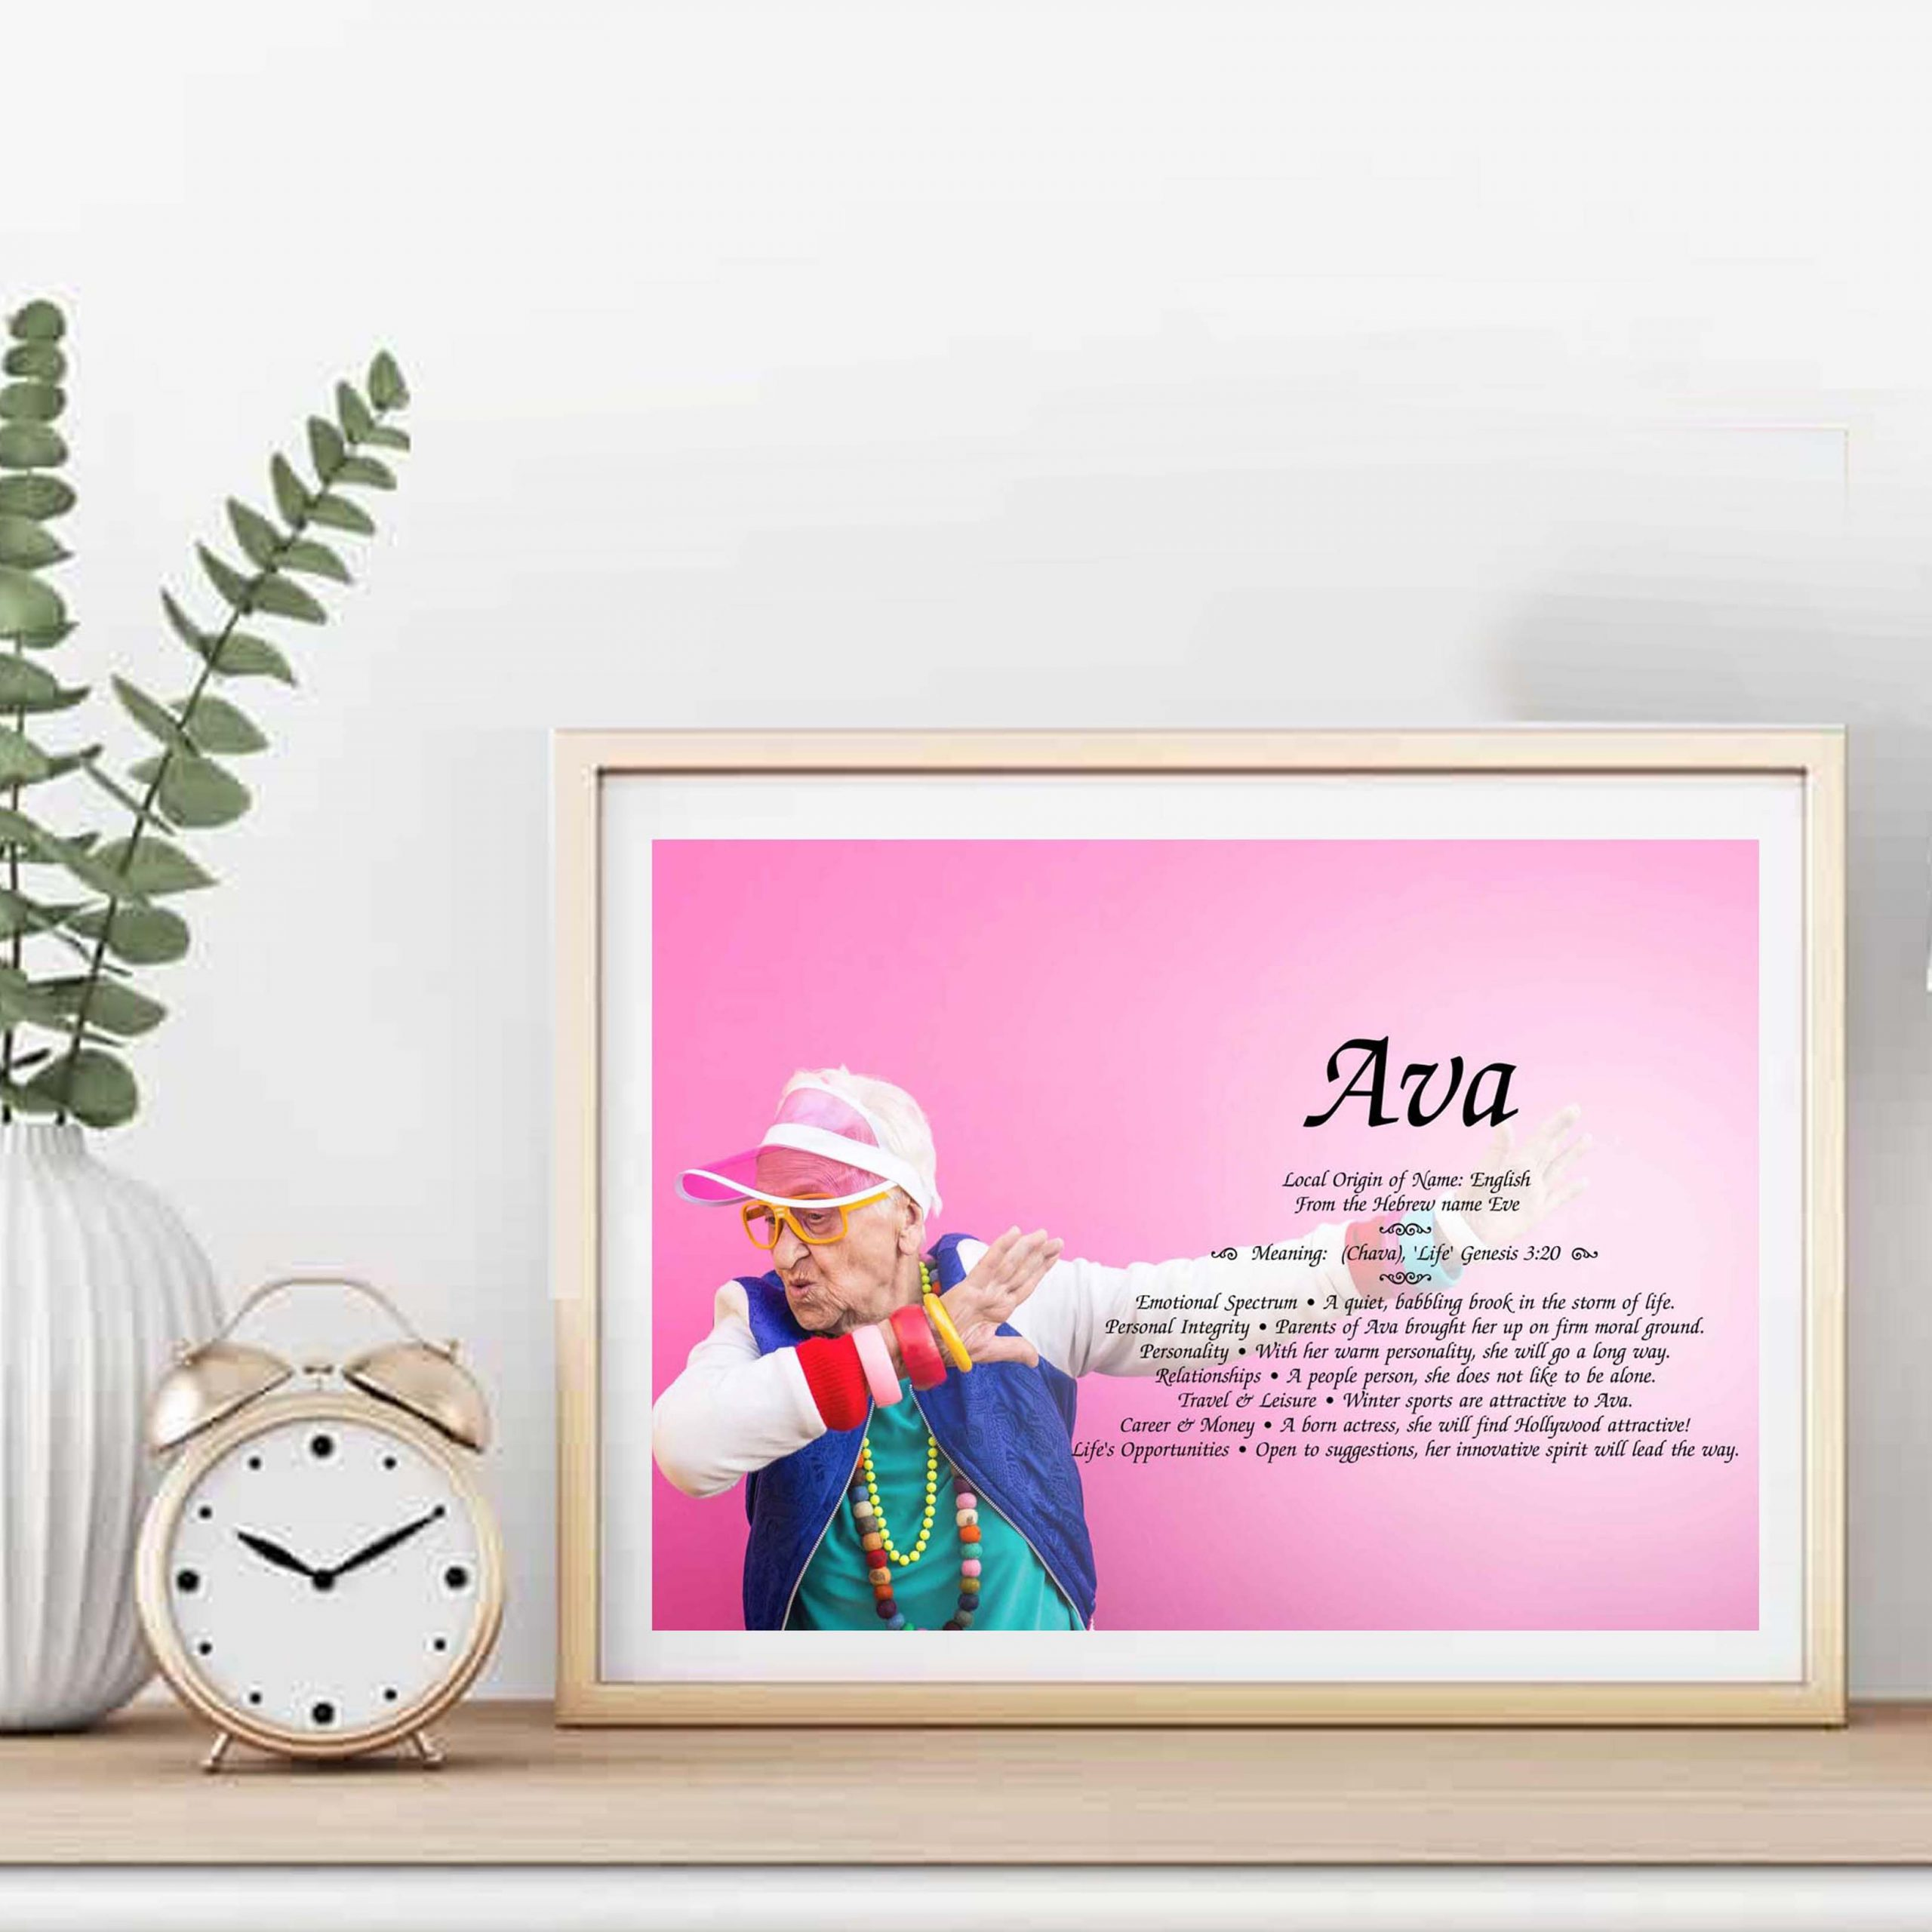 Name Frames Opens Eyes  Excites With Custom Designed Beautiful Print Gifts